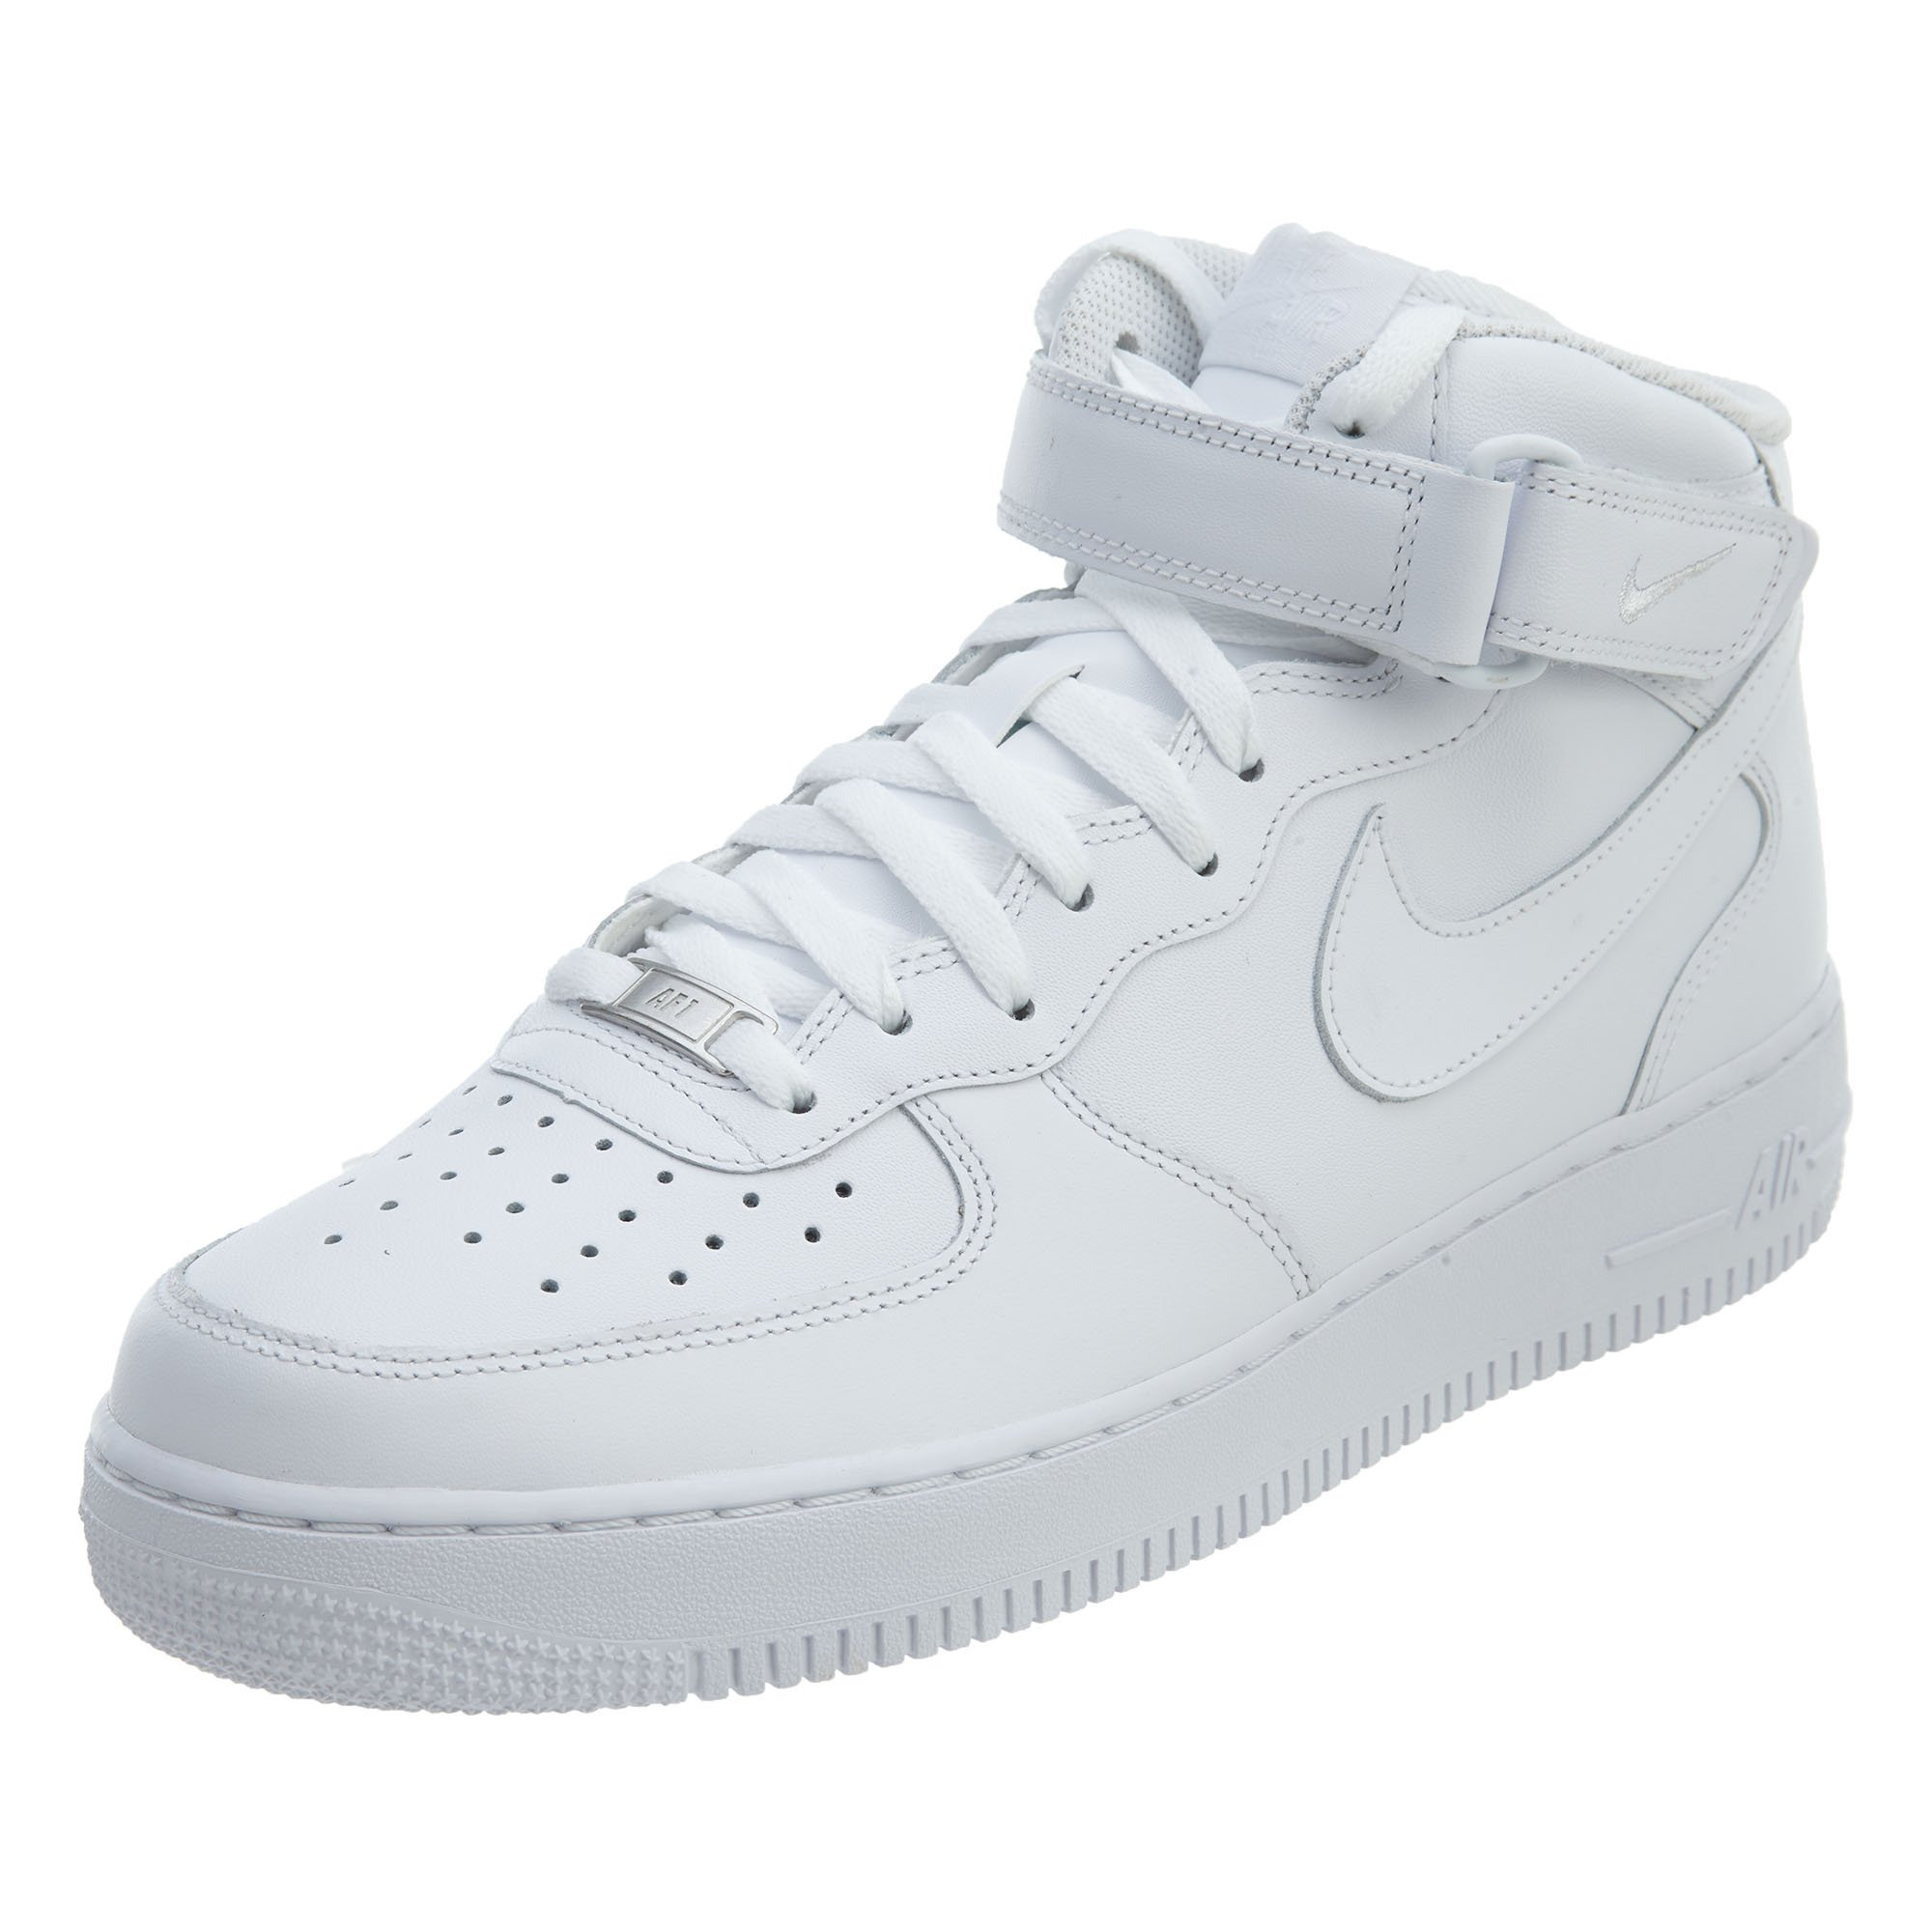 brand new b6e86 6772c Galleon - Nike Air Force 1 Mid